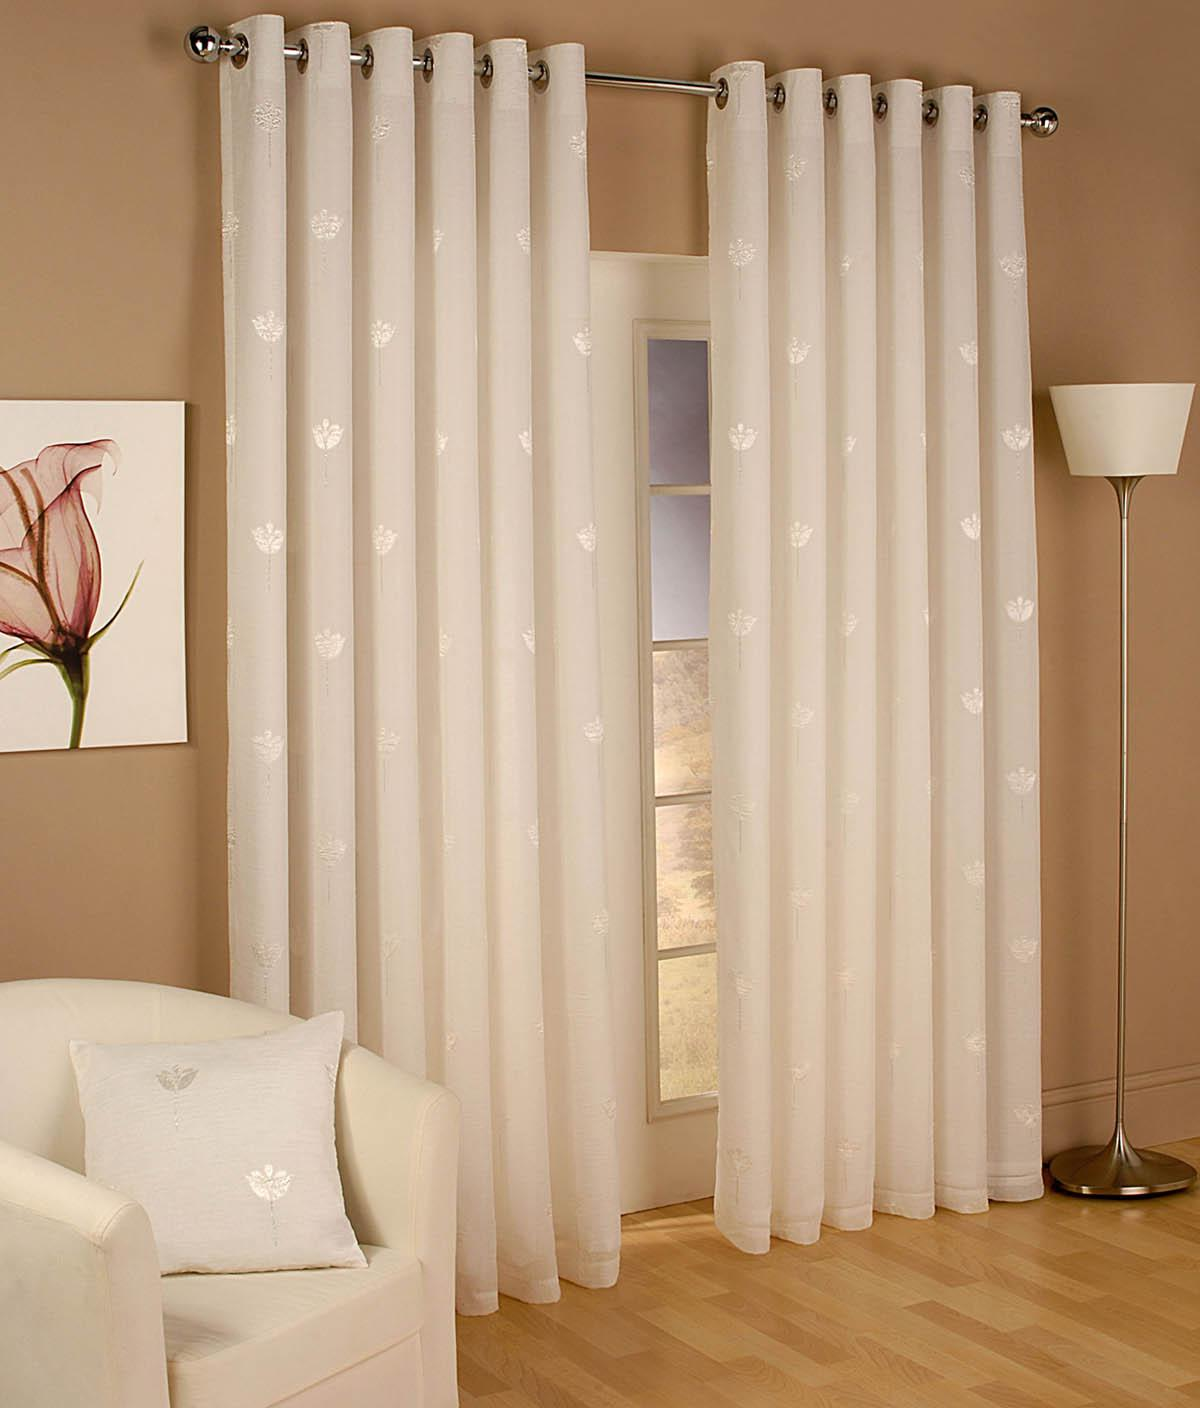 miami eyelet voile curtains natural free uk delivery decorology gorgeous curtains and a very generous discount